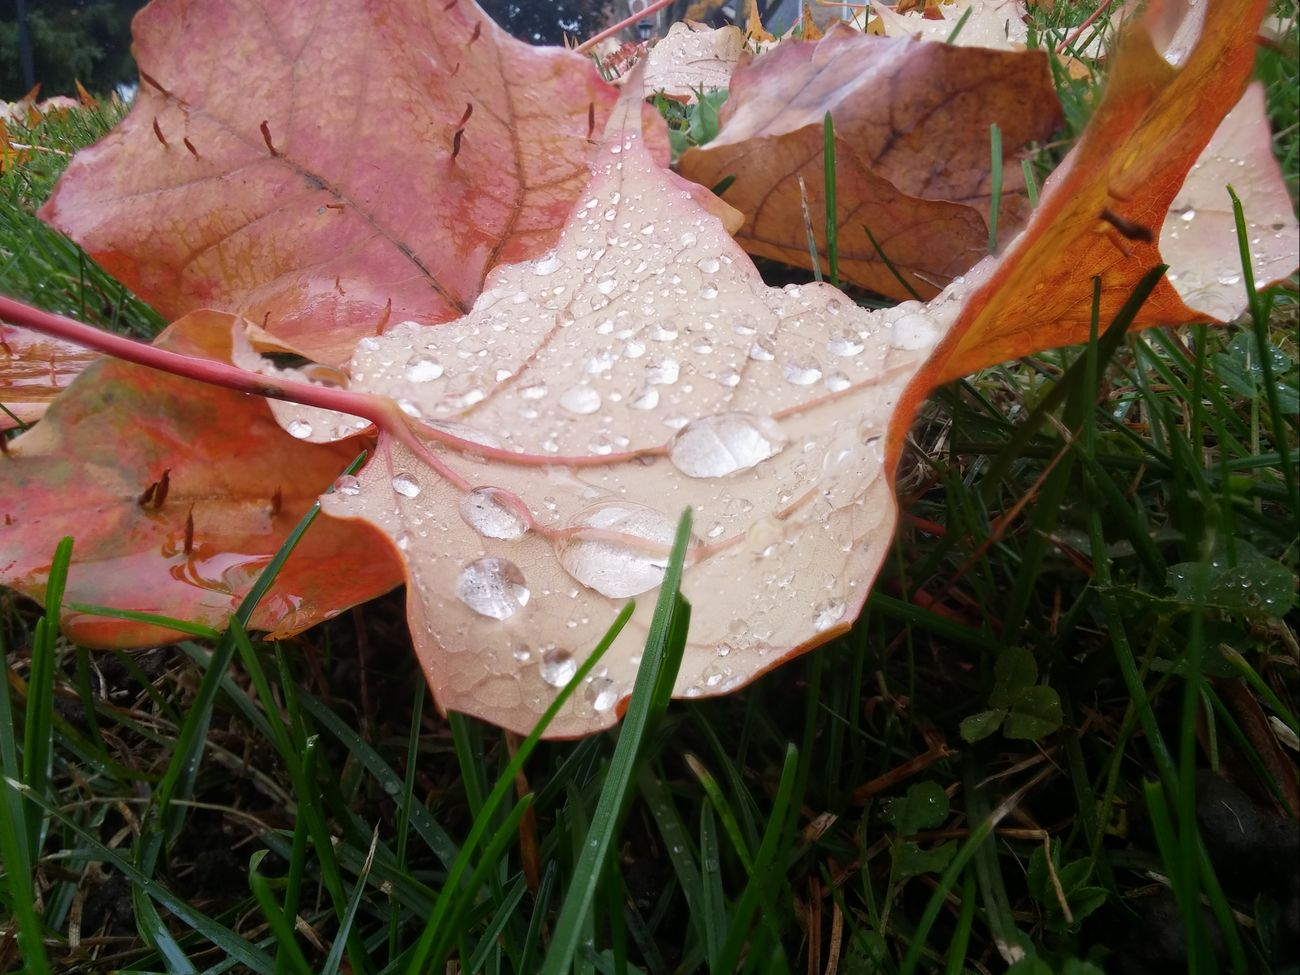 Fall Leaves Fall Beauty Fall Collection Fallen Leaves Raindrops On Leaves . Raindrops Eyem Best Shots Nature_collection EyeEm Best Shots - Nature Eyeemcolours EyeEm Best Shots LGg3photography LGG3 Water